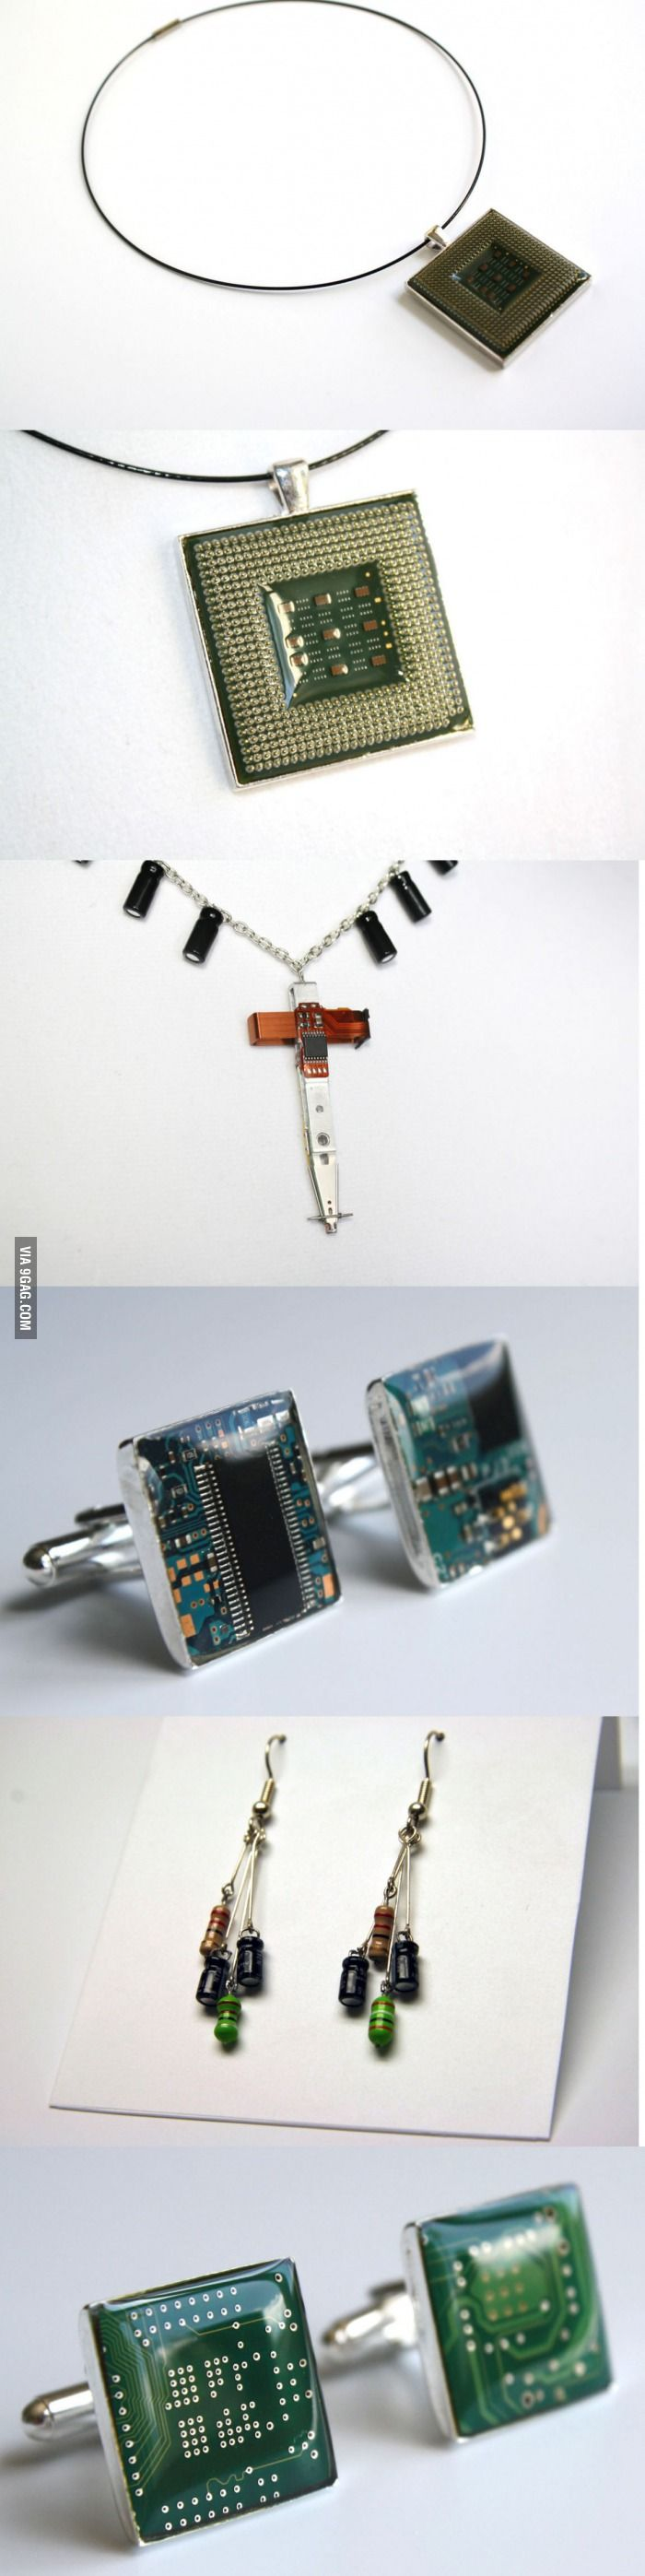 Tech Jewelry - seriously, where can i get this?: Functional Jewelry, Geeky Fun, Tech Fashion, Funny Pics, Tech Jewelry, Jewelry Accessories, Tech Jewellery, Tech Jewlery, Geeky Fashion